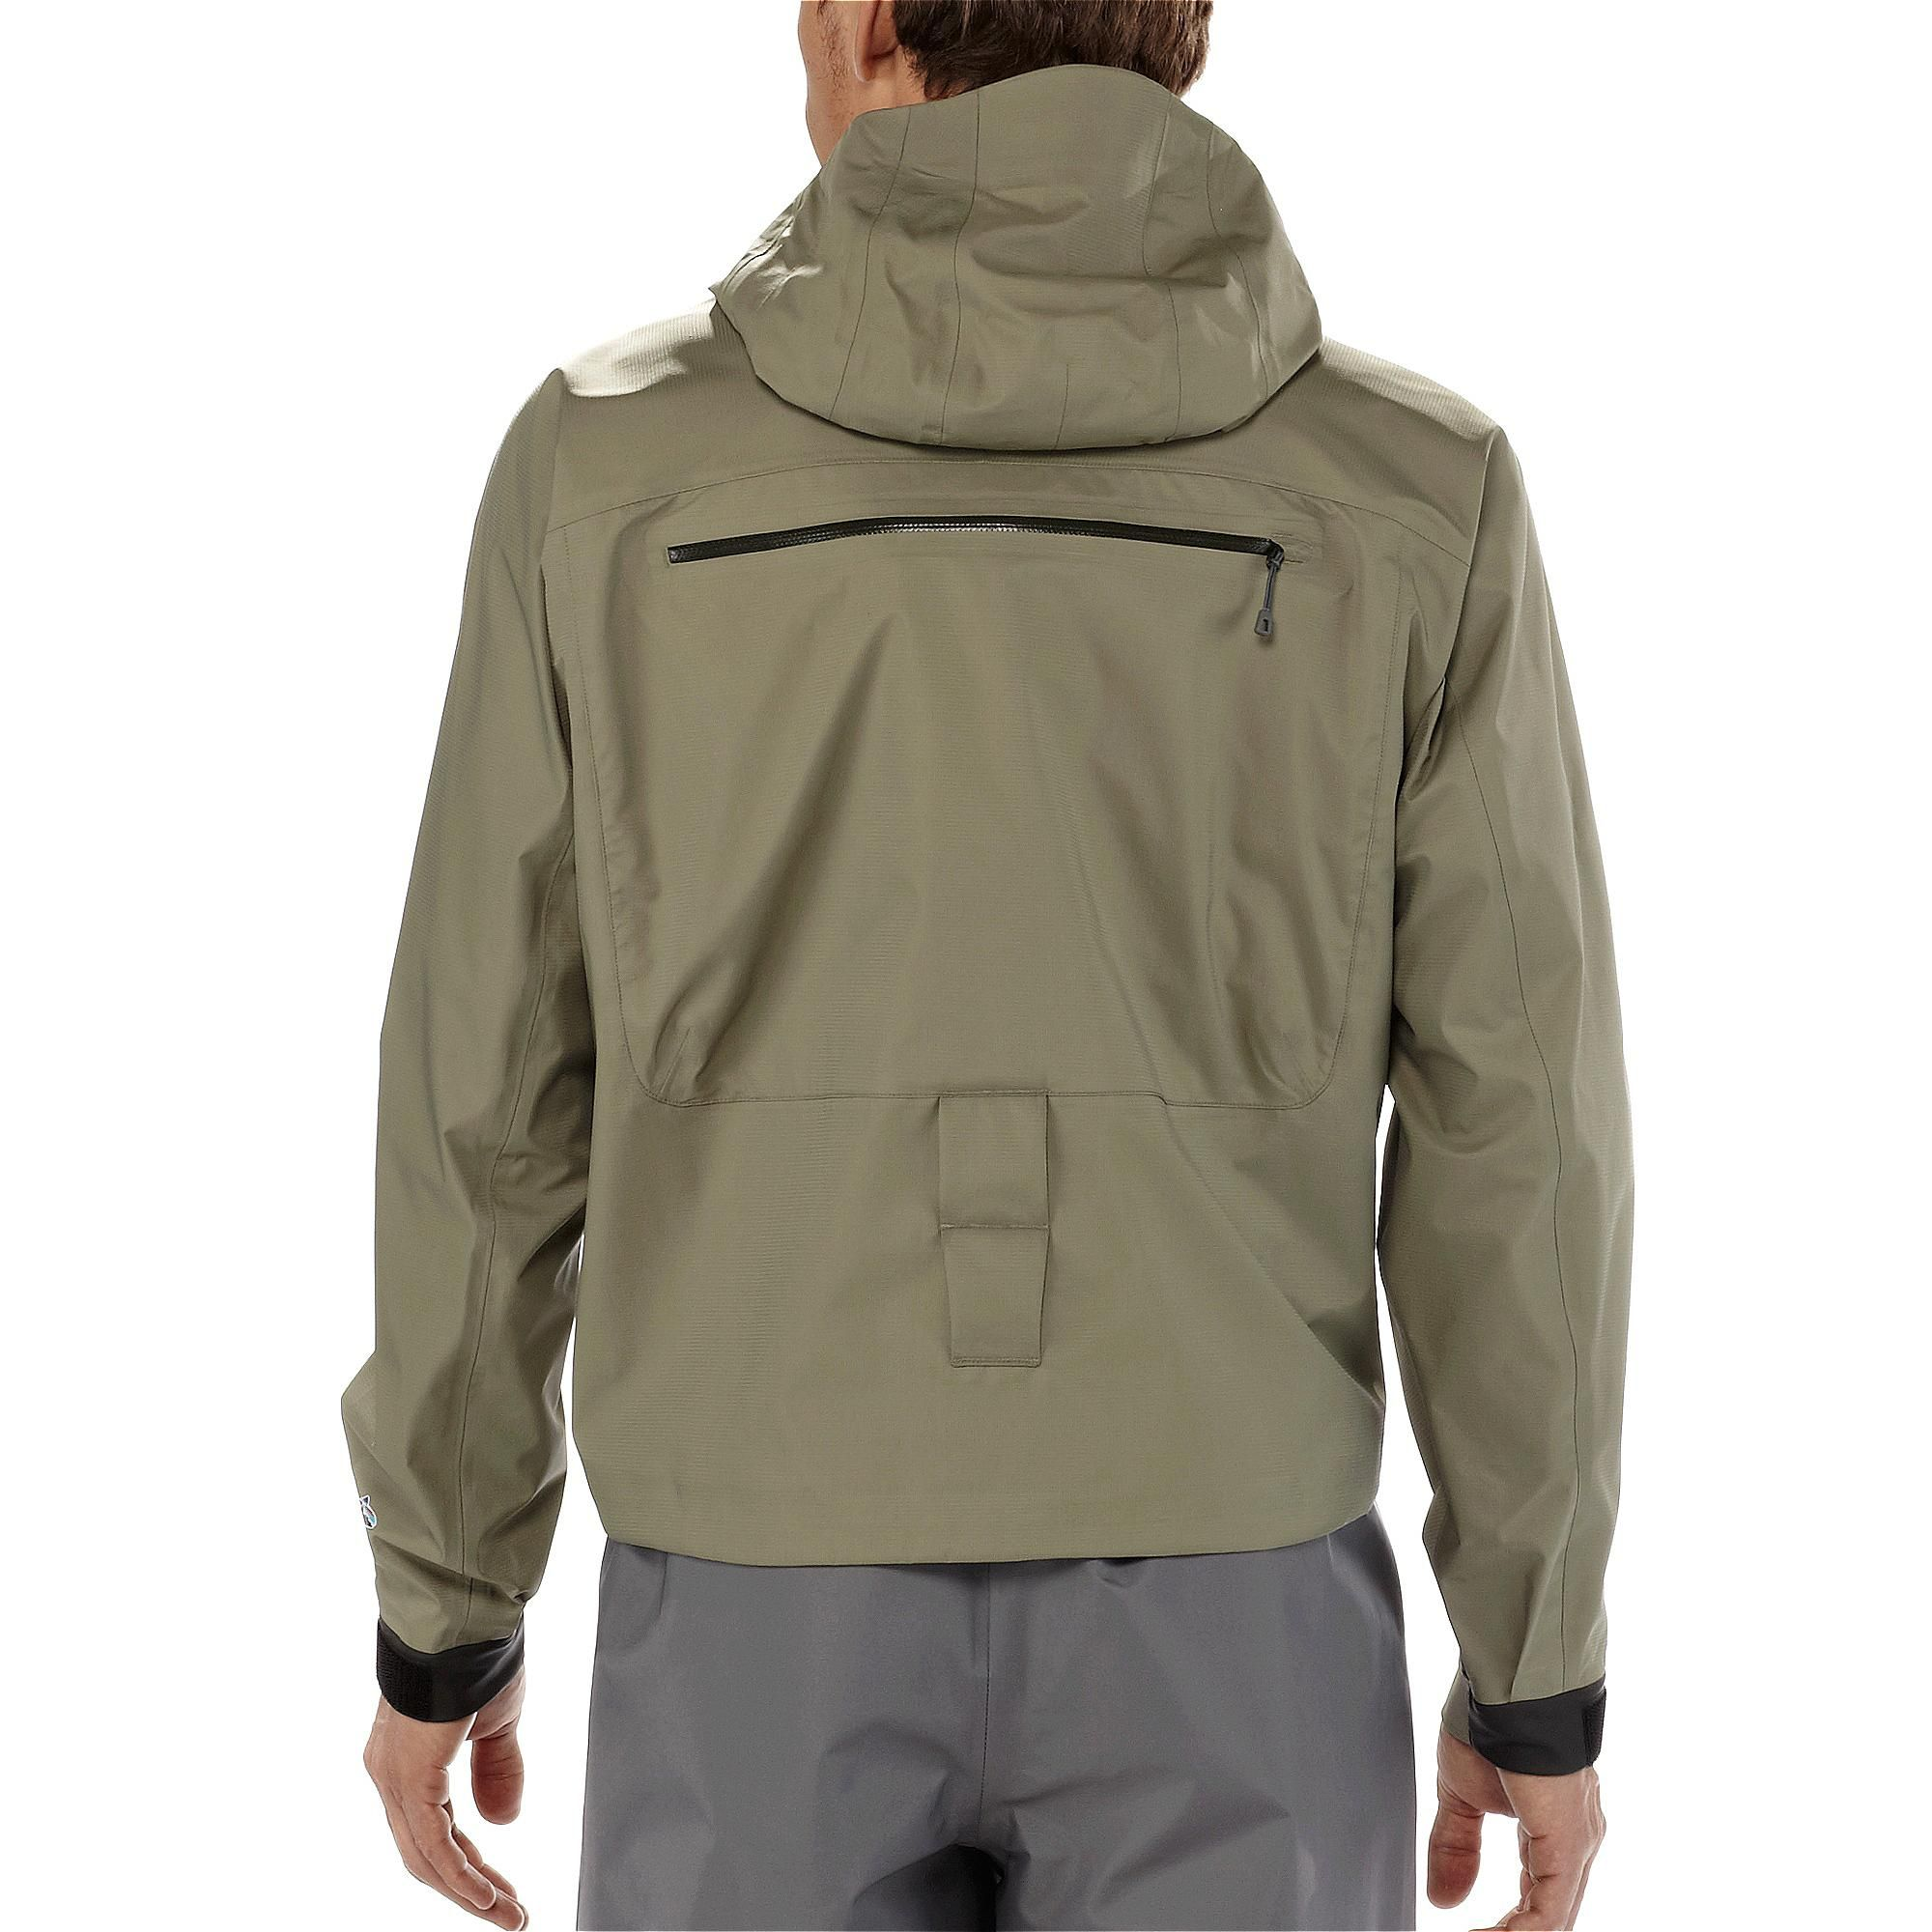 Patagonia Sst Jacket For Fly Fishing Fly Fishing Clothing Fishing Outfits Jackets